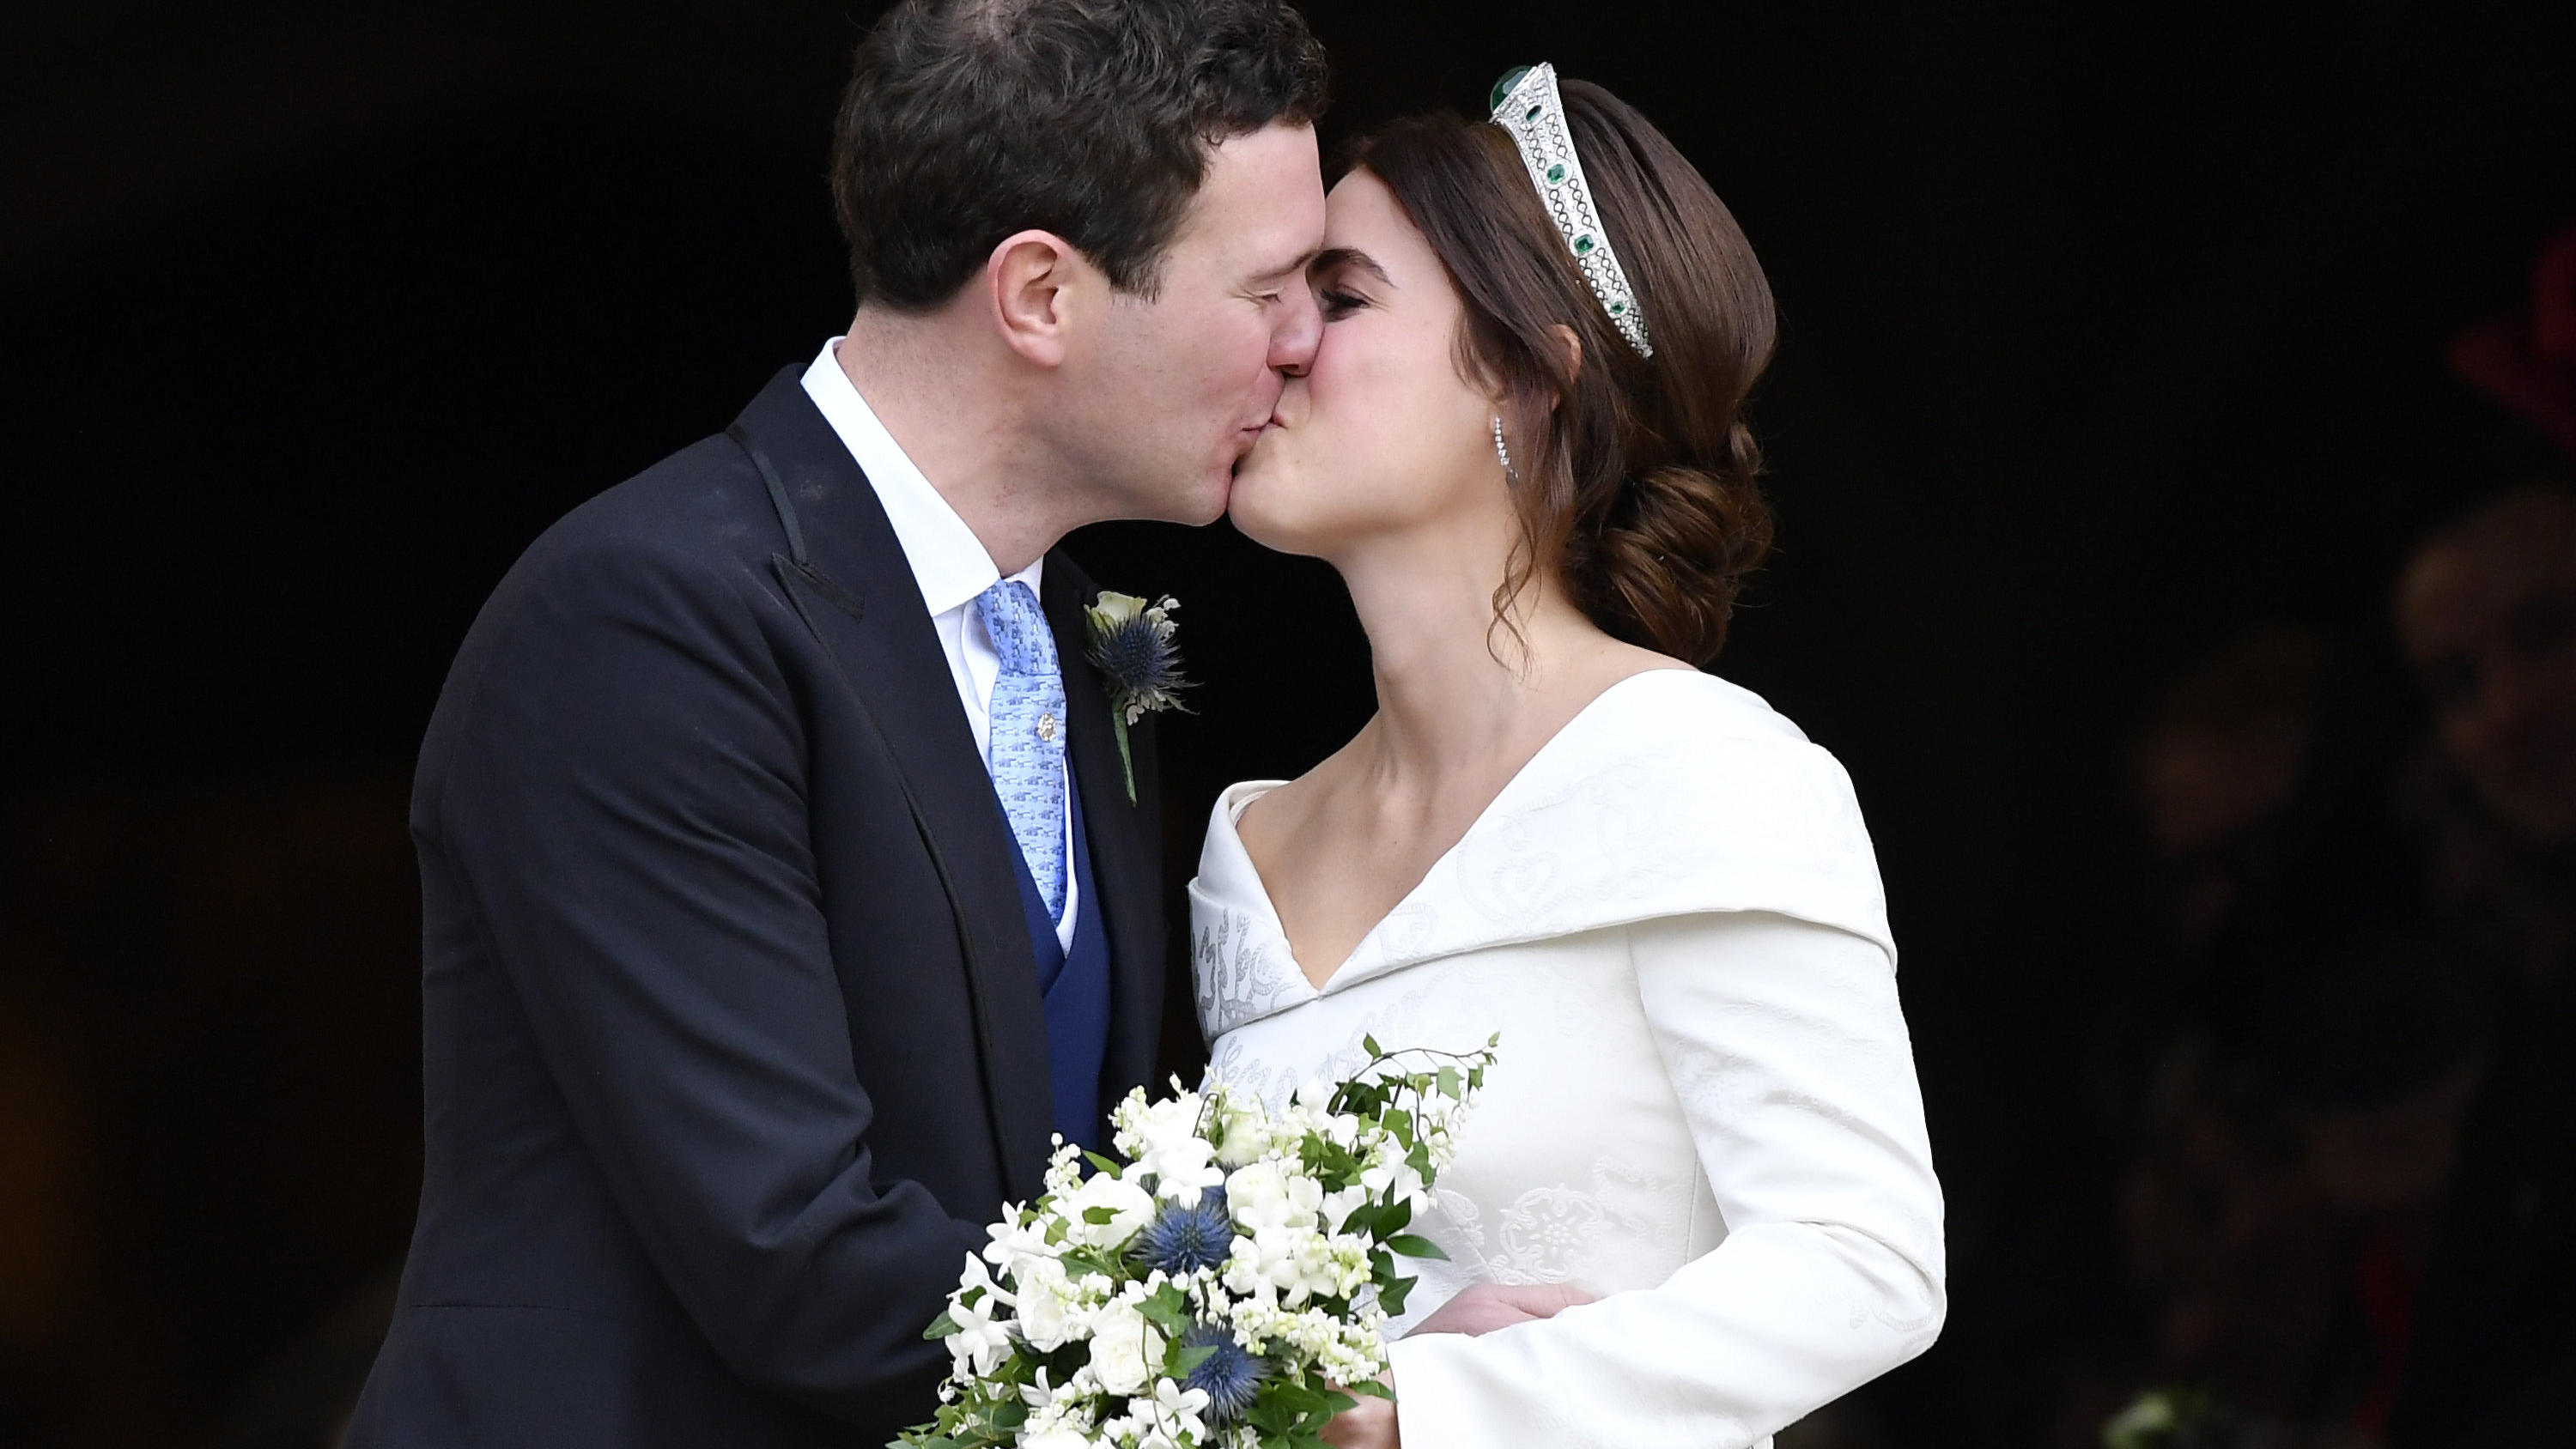 FILE - In this Friday, Oct. 12, 2018 file photo, Princess Eugenie and Jack Brooksbank kiss after their wedding at St George's Chapel, Windsor Castle, in Windsor, England. Princess Eugenie and her husband Jack Brooksbank annouced on Friday, Sept. 25,